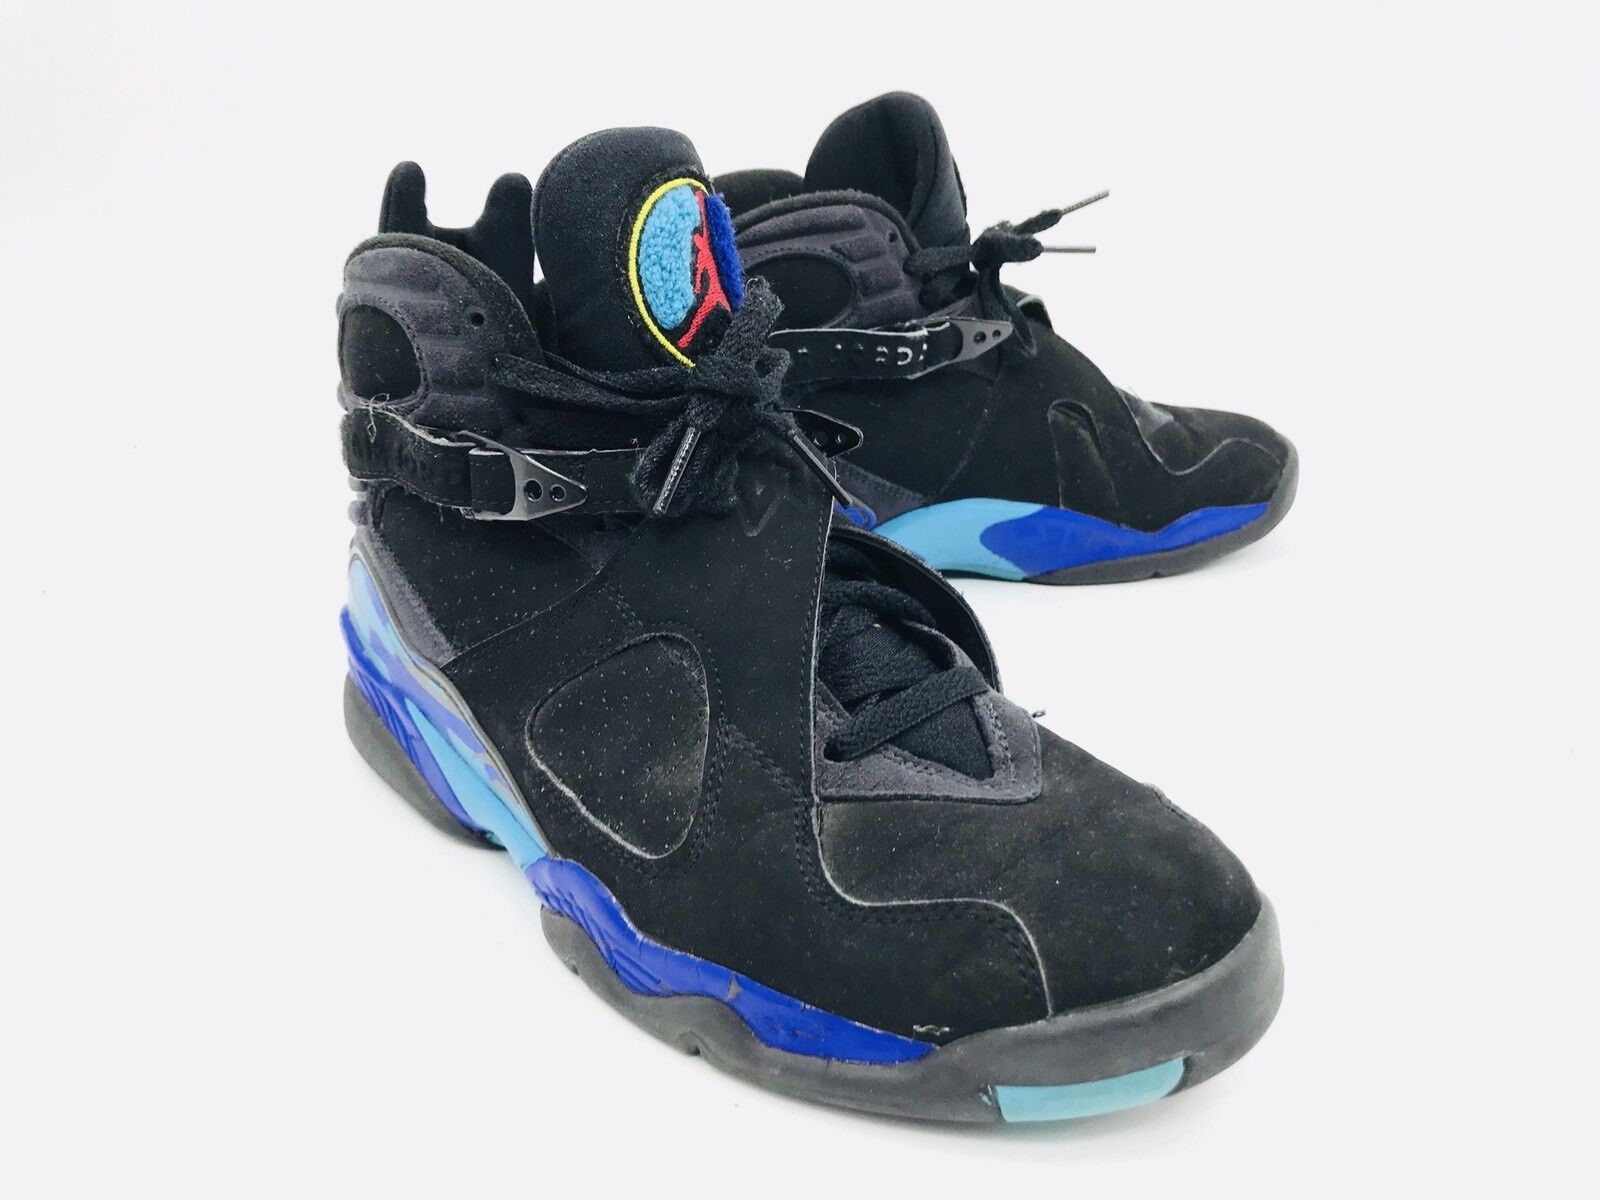 Nike Air Jordan 8 Retro Black Blue Shoes 305381-041 Mens Size 8.5